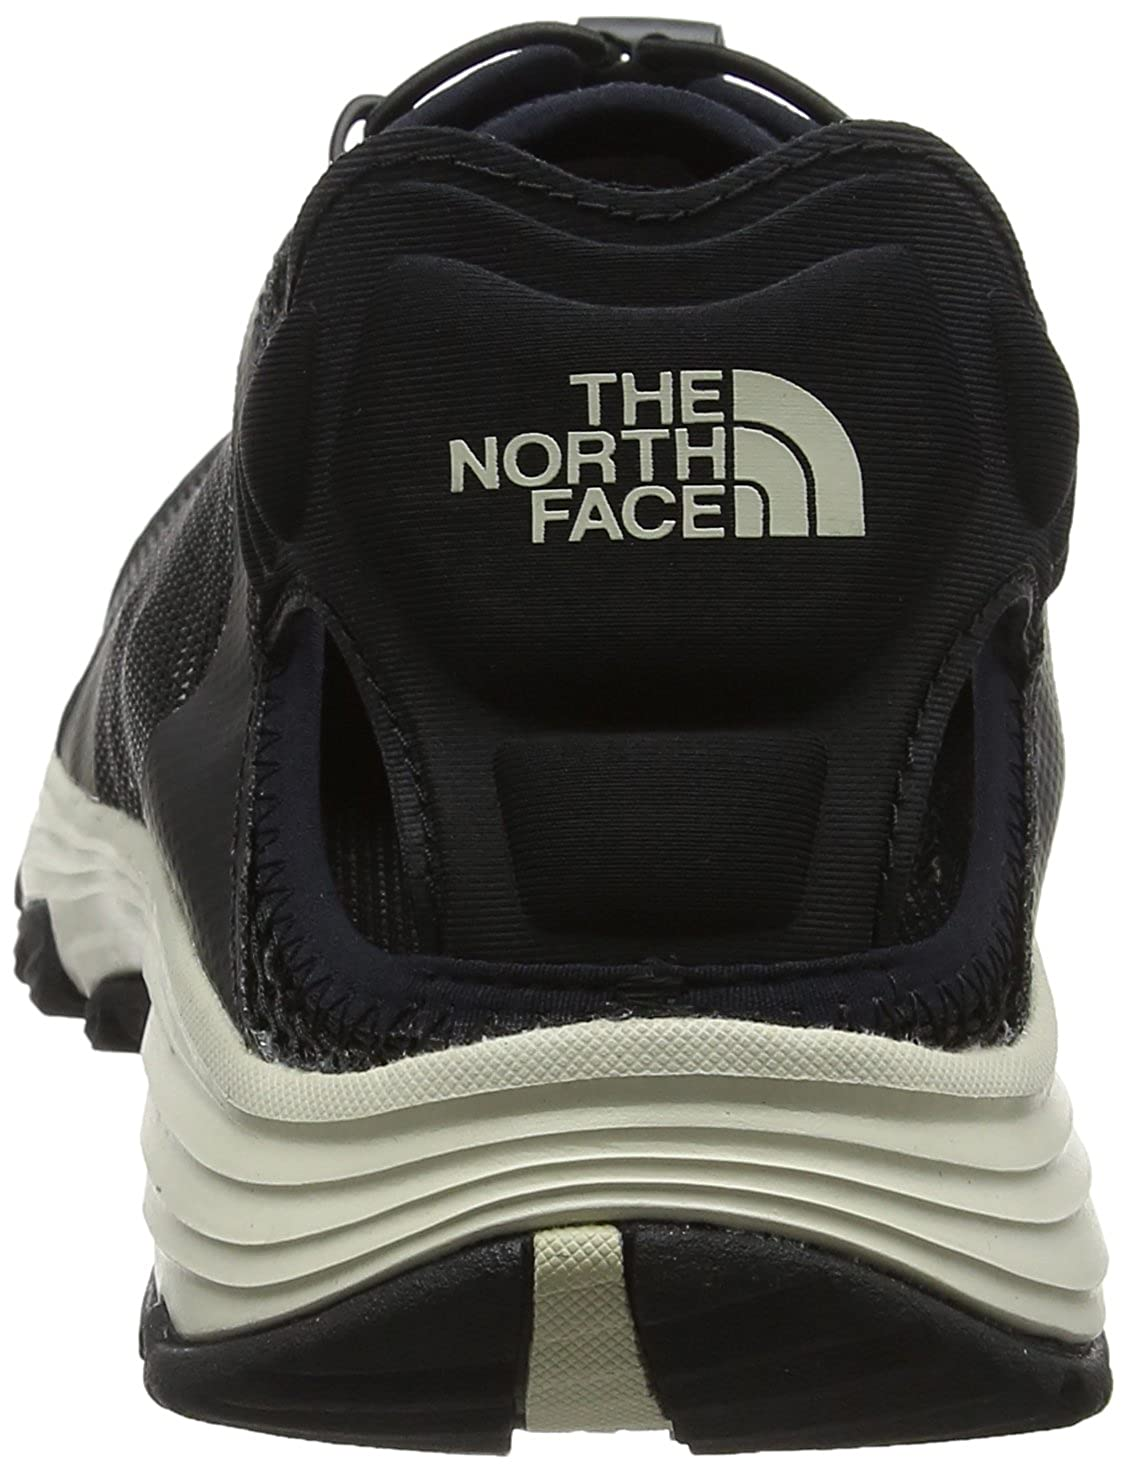 THE Herren NORTH FACE Herren THE M Litewave Amphib Ii Fitnessschuhe 473f8e